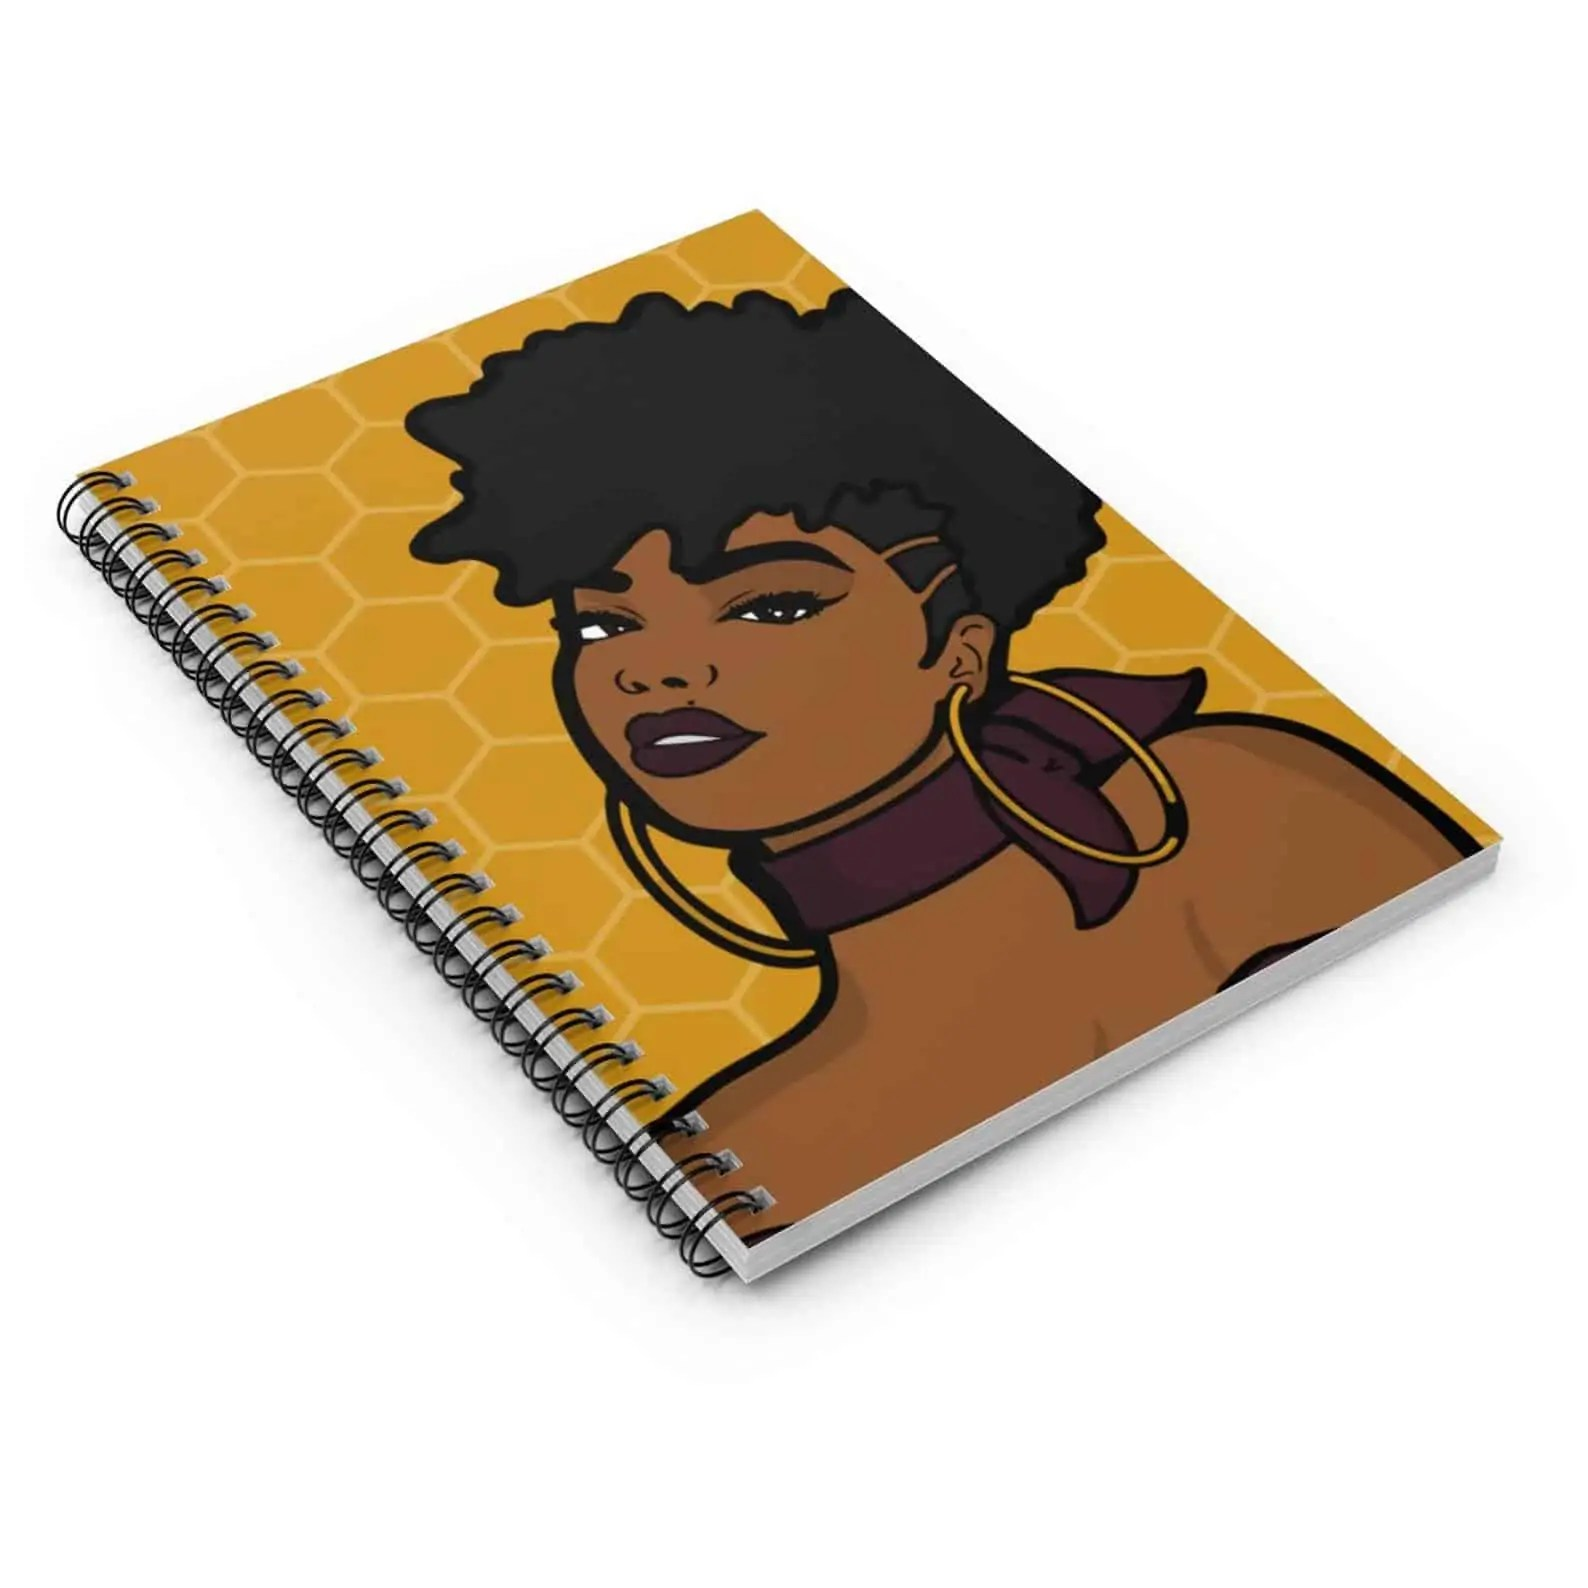 M&K Creative Designs Black Owned Canadian Etsy Shop | Afrocentric Products Black Girl Notebook